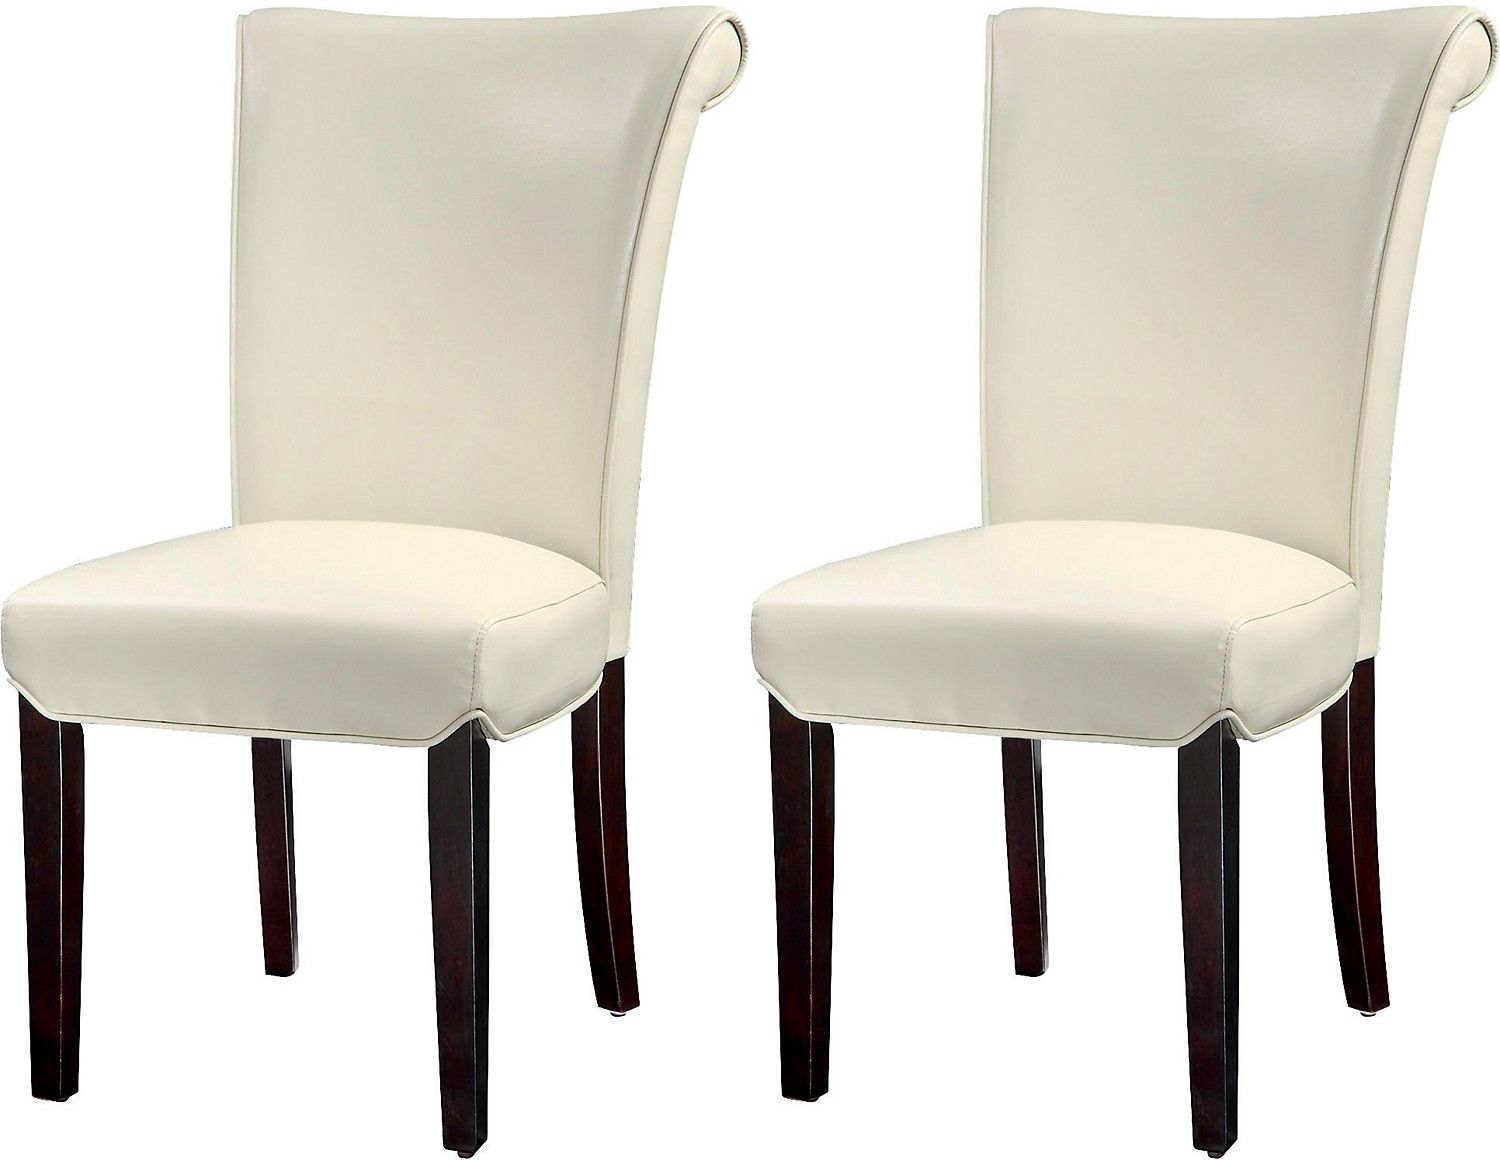 Brogan 2Piece Dining Chair Package  Ivory  Dining Chairs Ivory Fascinating Dining Room Accent Pieces 2018